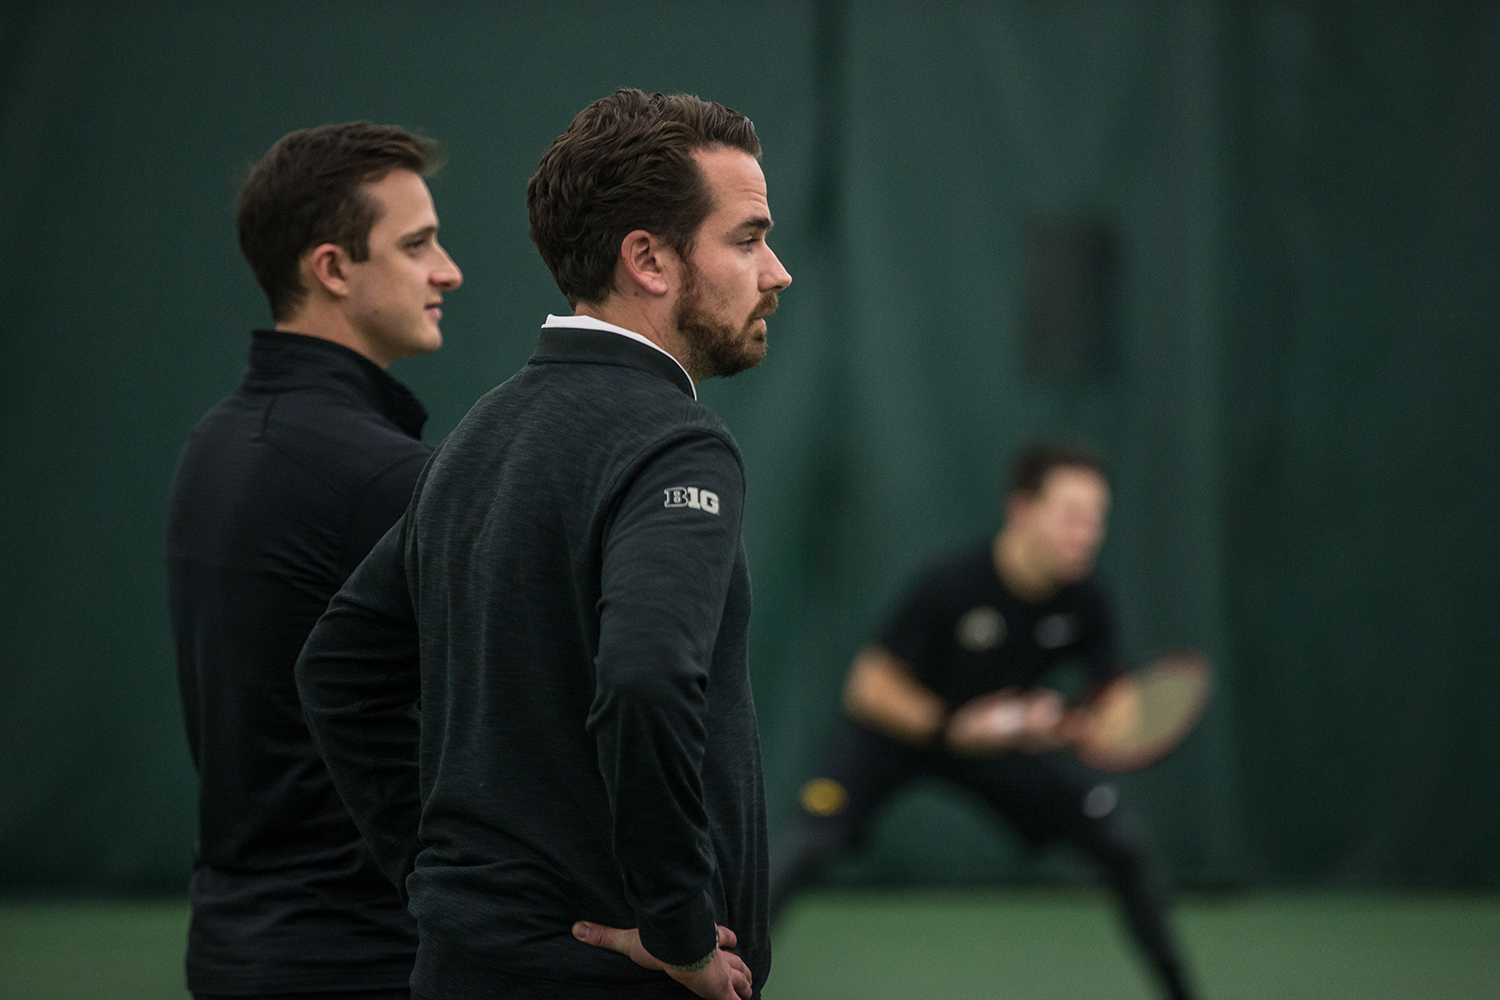 Iowa coach Ross Wilson watches his team during a men's tennis match between Iowa and Marquette on Saturday, January 19, 2019. The Hawkeyes swept the Golden Eagles, 7-0.